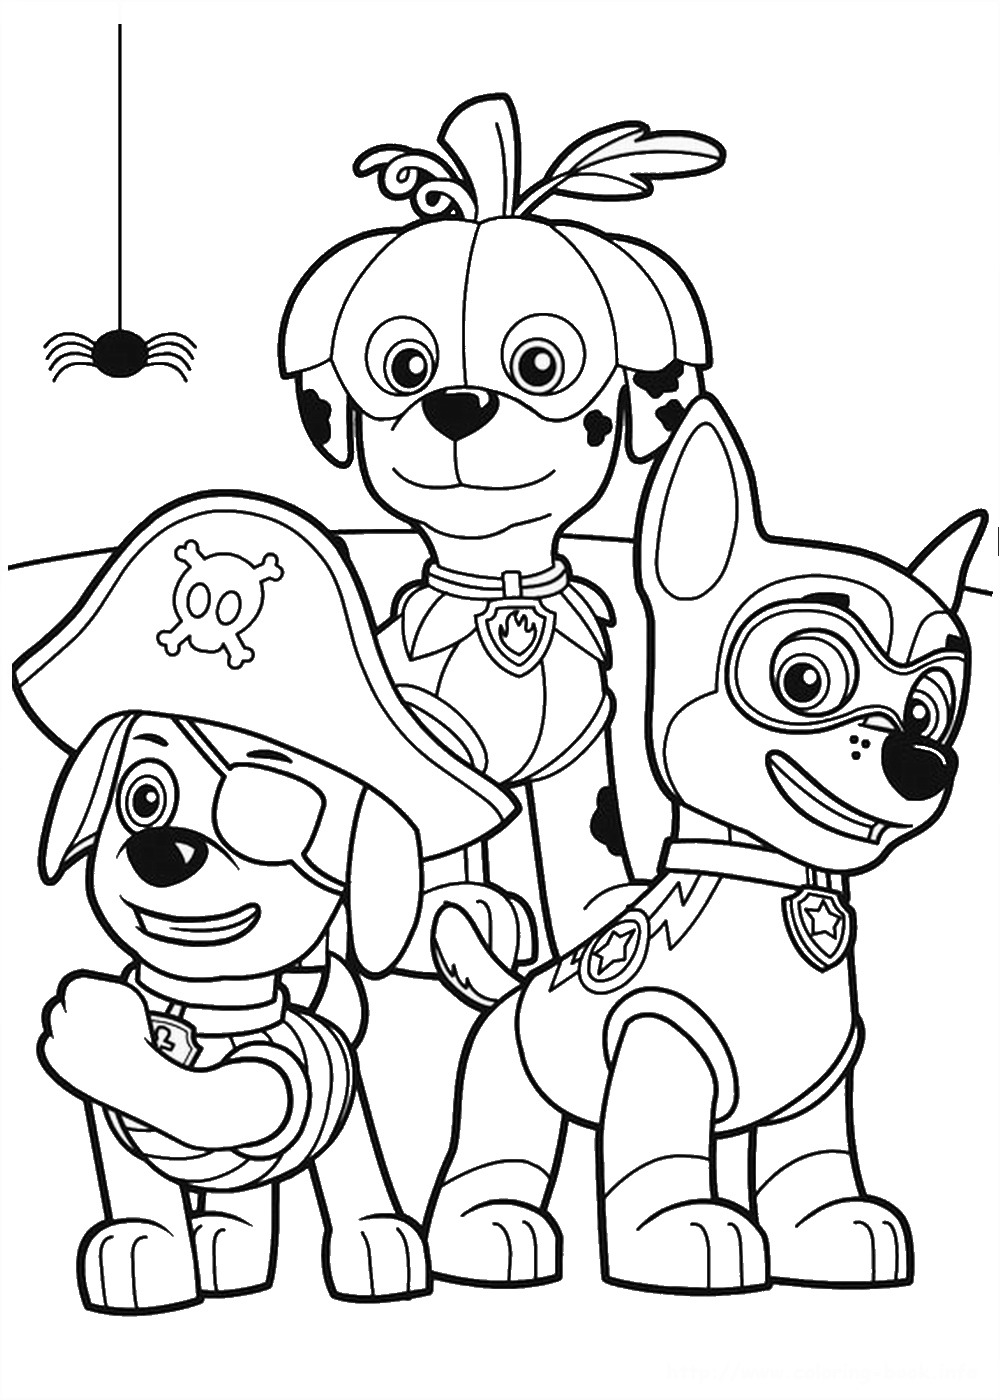 Nick Jr Coloring Pages Printable